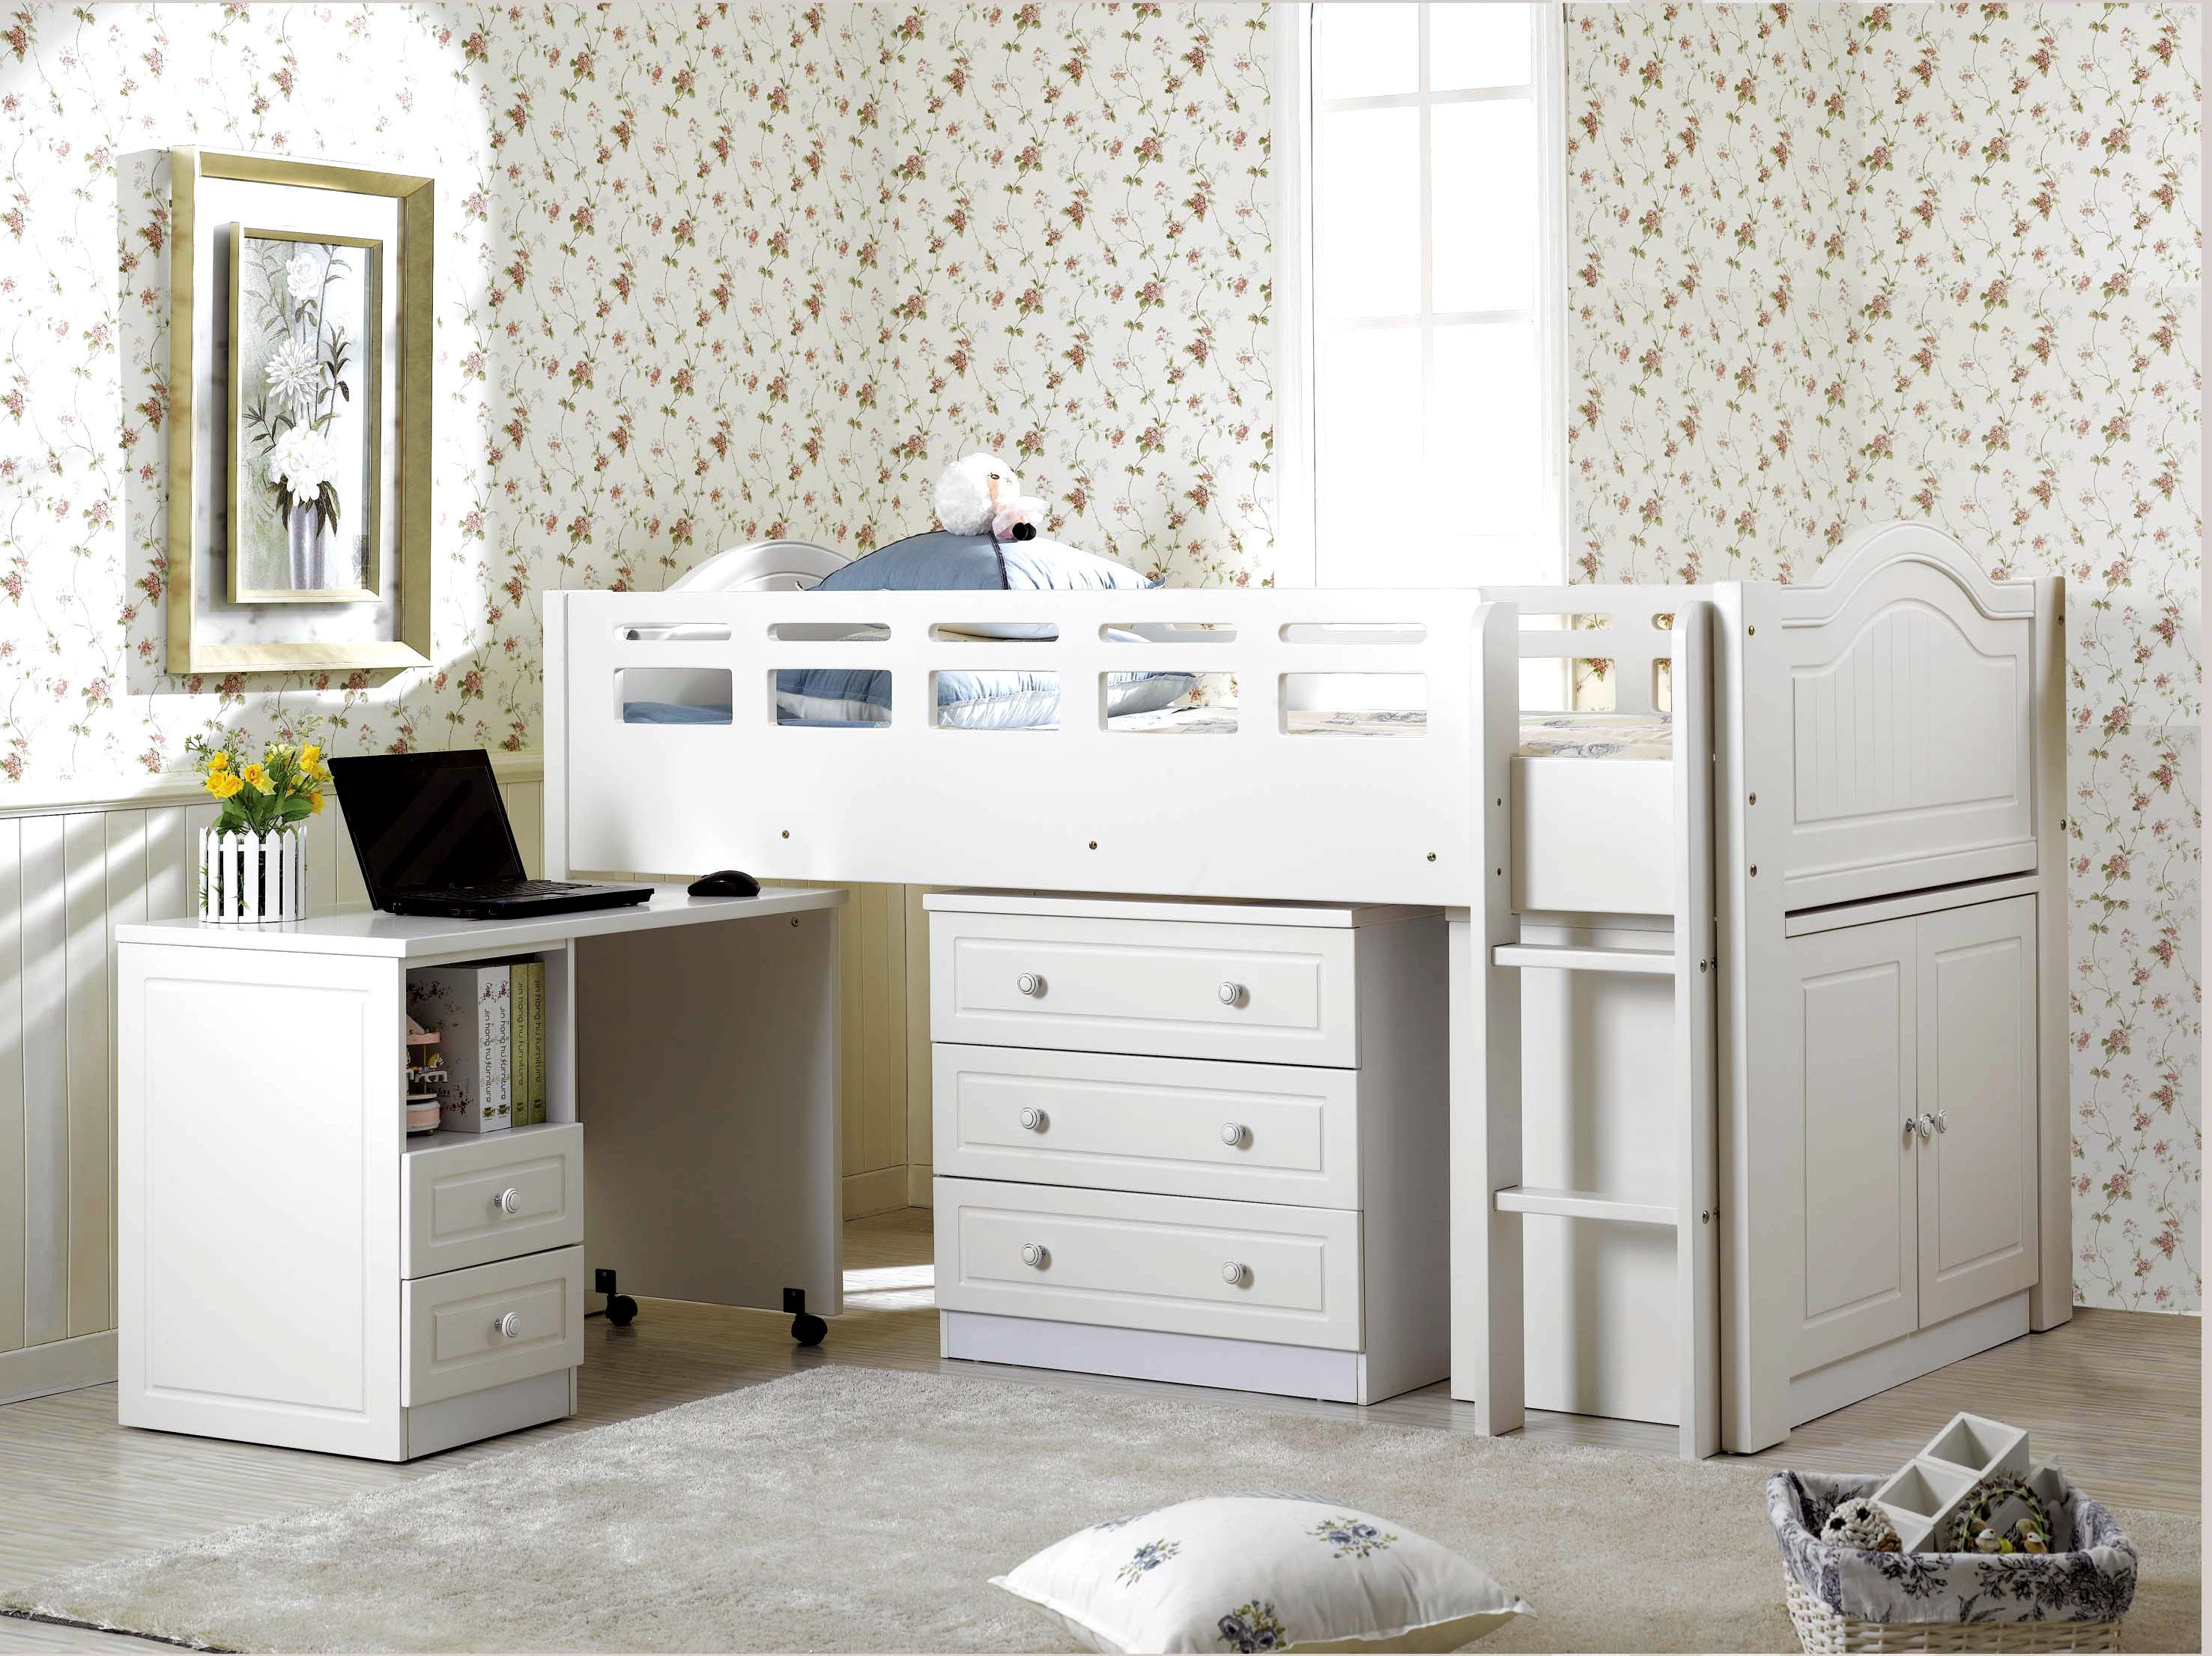 the steps l twin appealing desk over trundle bunk and drawers kid select stairs magnificent bedroom beds shaped remarkable to full with decofurnish loft storage kids